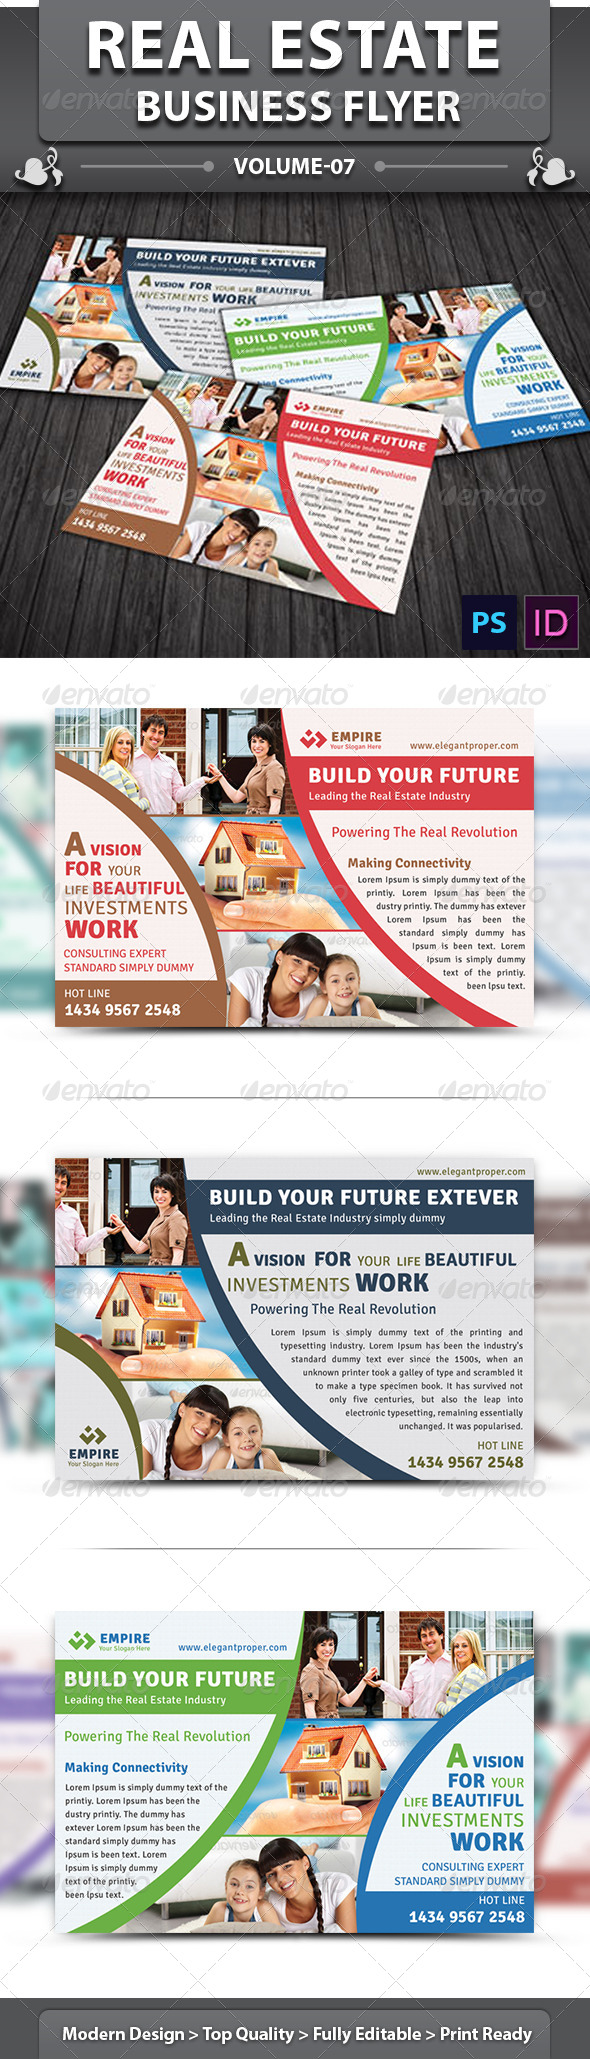 Real Estate Business Flyer | Volume 5 - Corporate Flyers